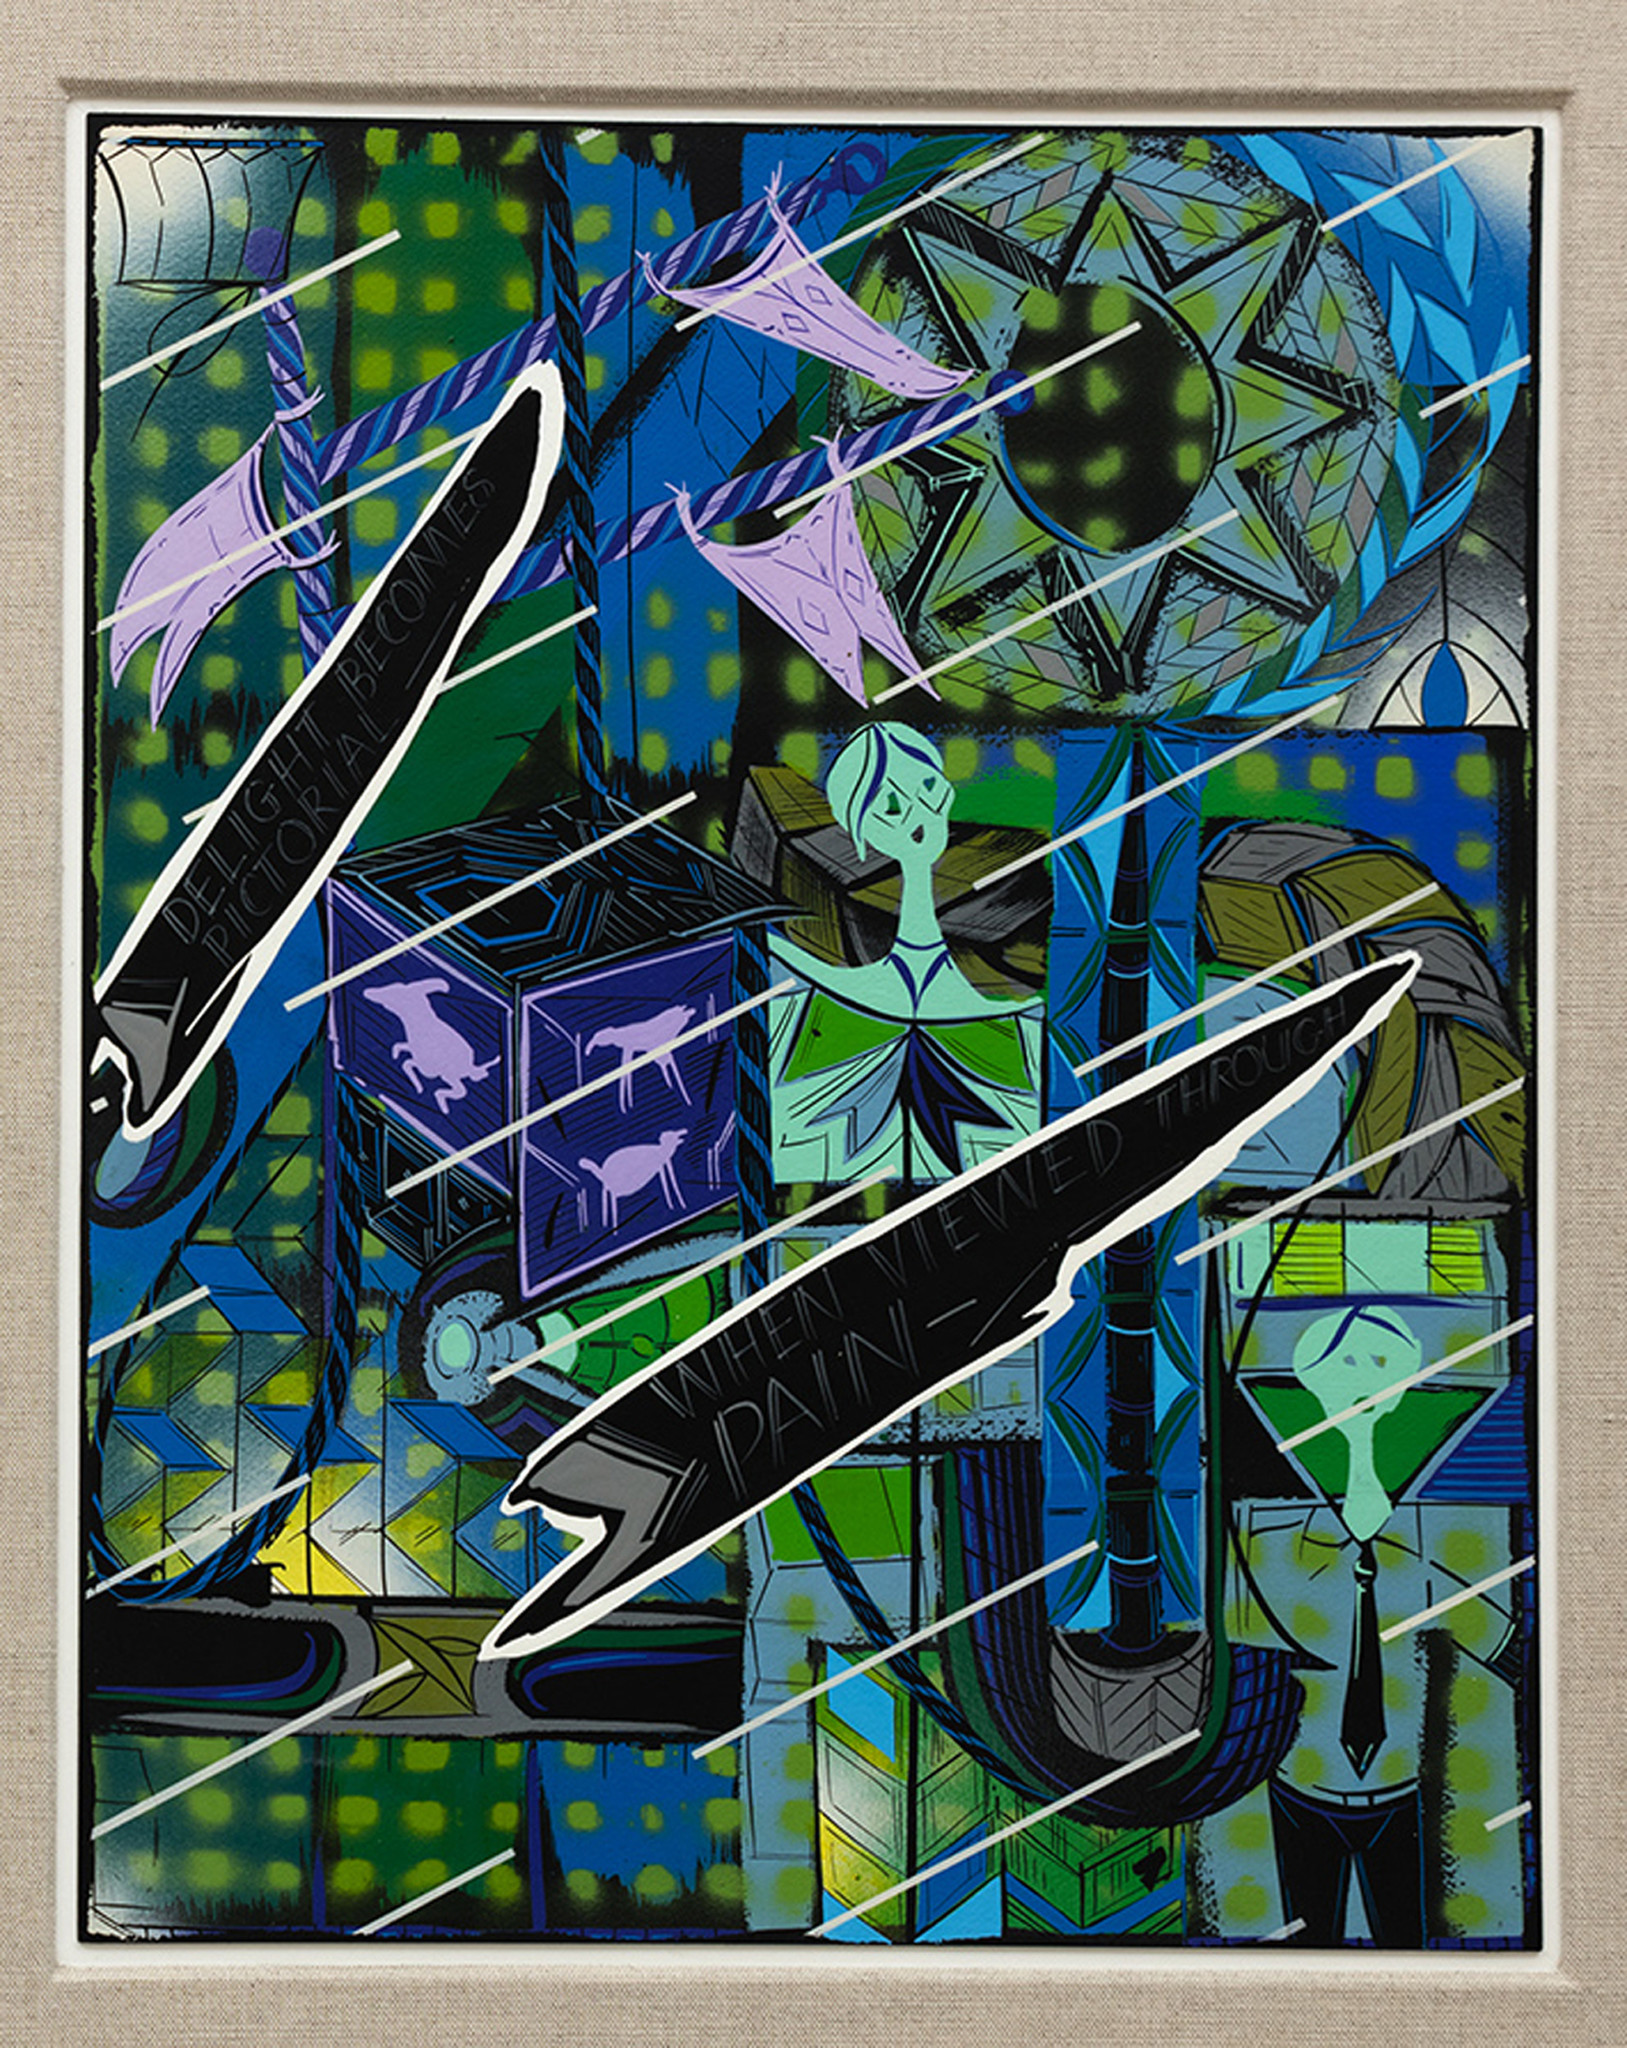 """Lari Pittman's """"10 Divinations by Emily Dickinson in Greens and Blues,"""" 2015, acrylic and lacquer spray over gessoed, heavyweight paper board, 27 inches by 25 inches by 4 1/2 inches."""